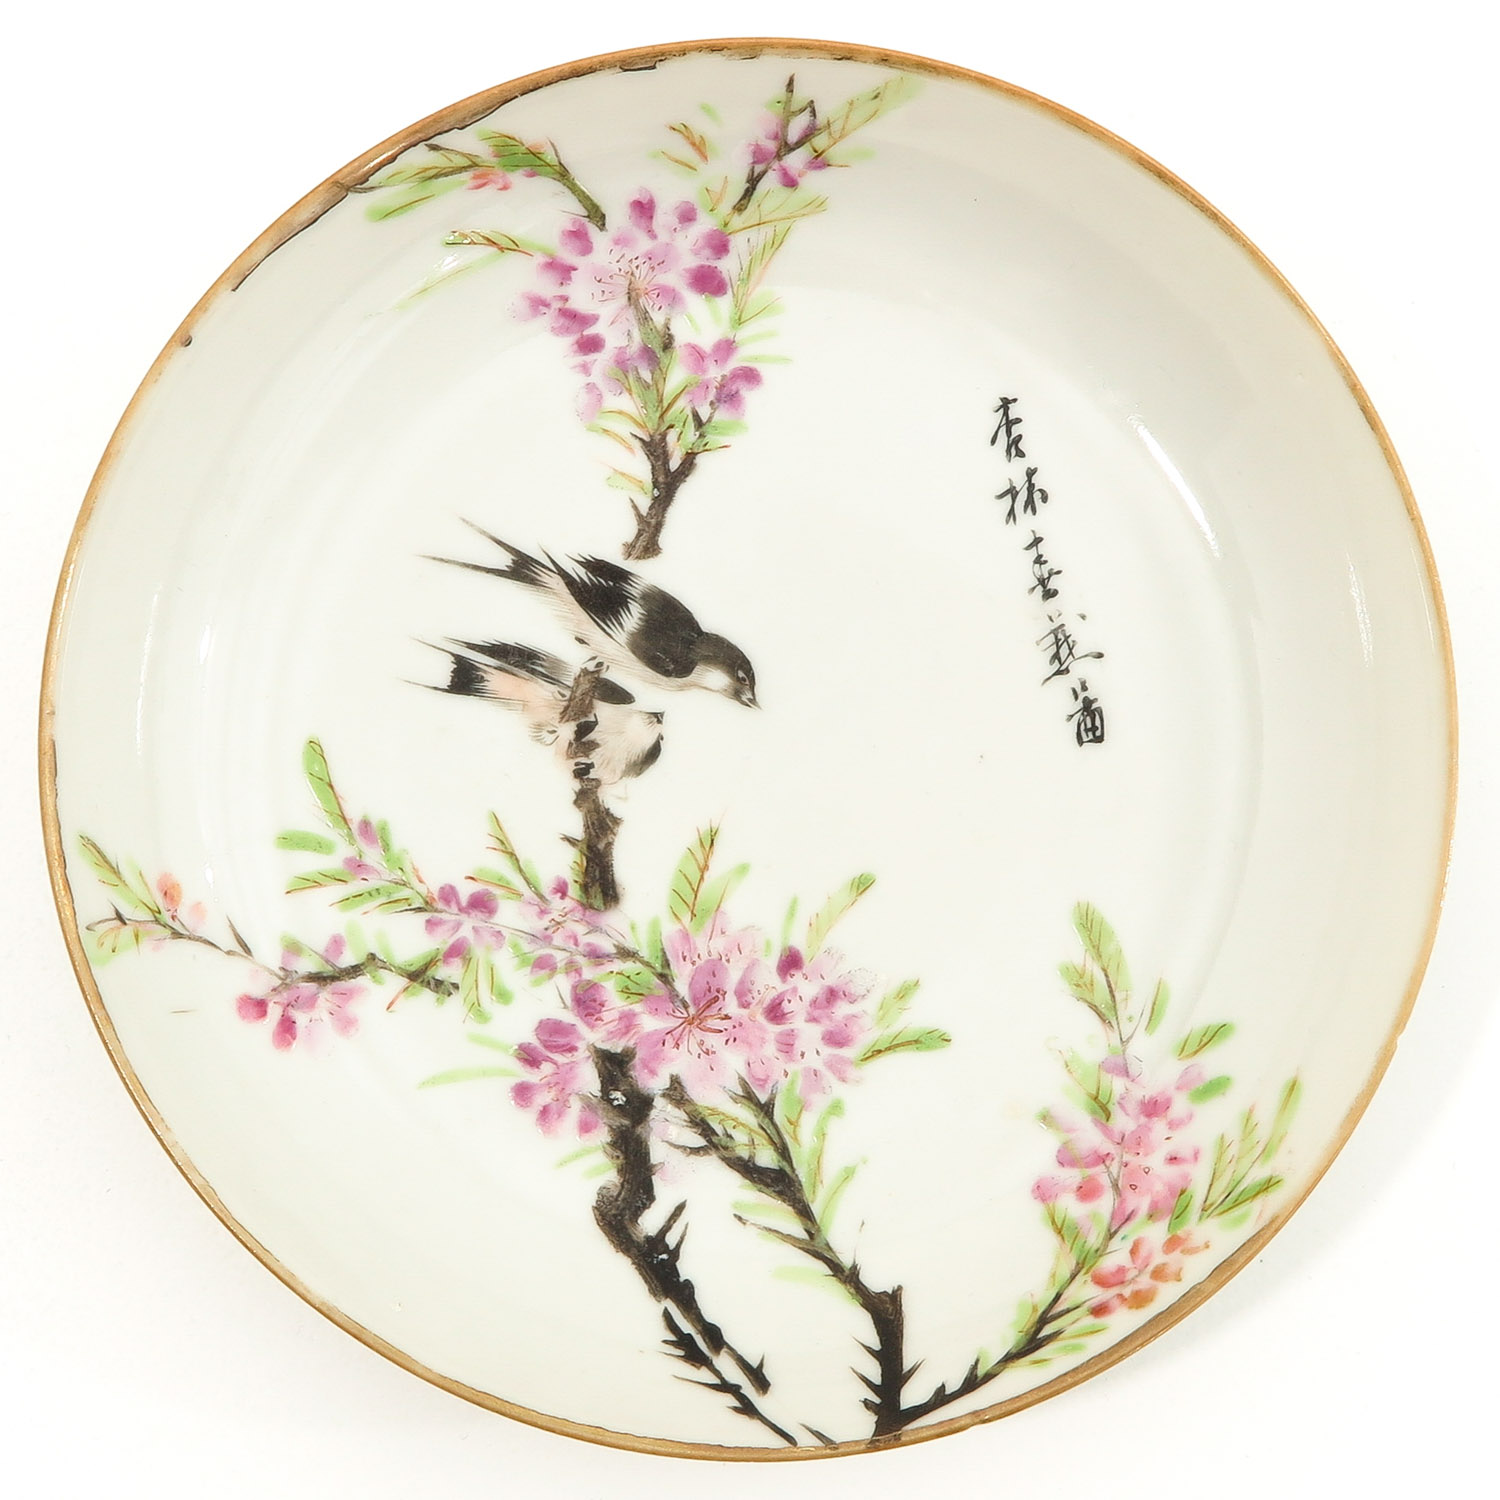 A Series of 3 Famille Rose Plates - Image 3 of 10